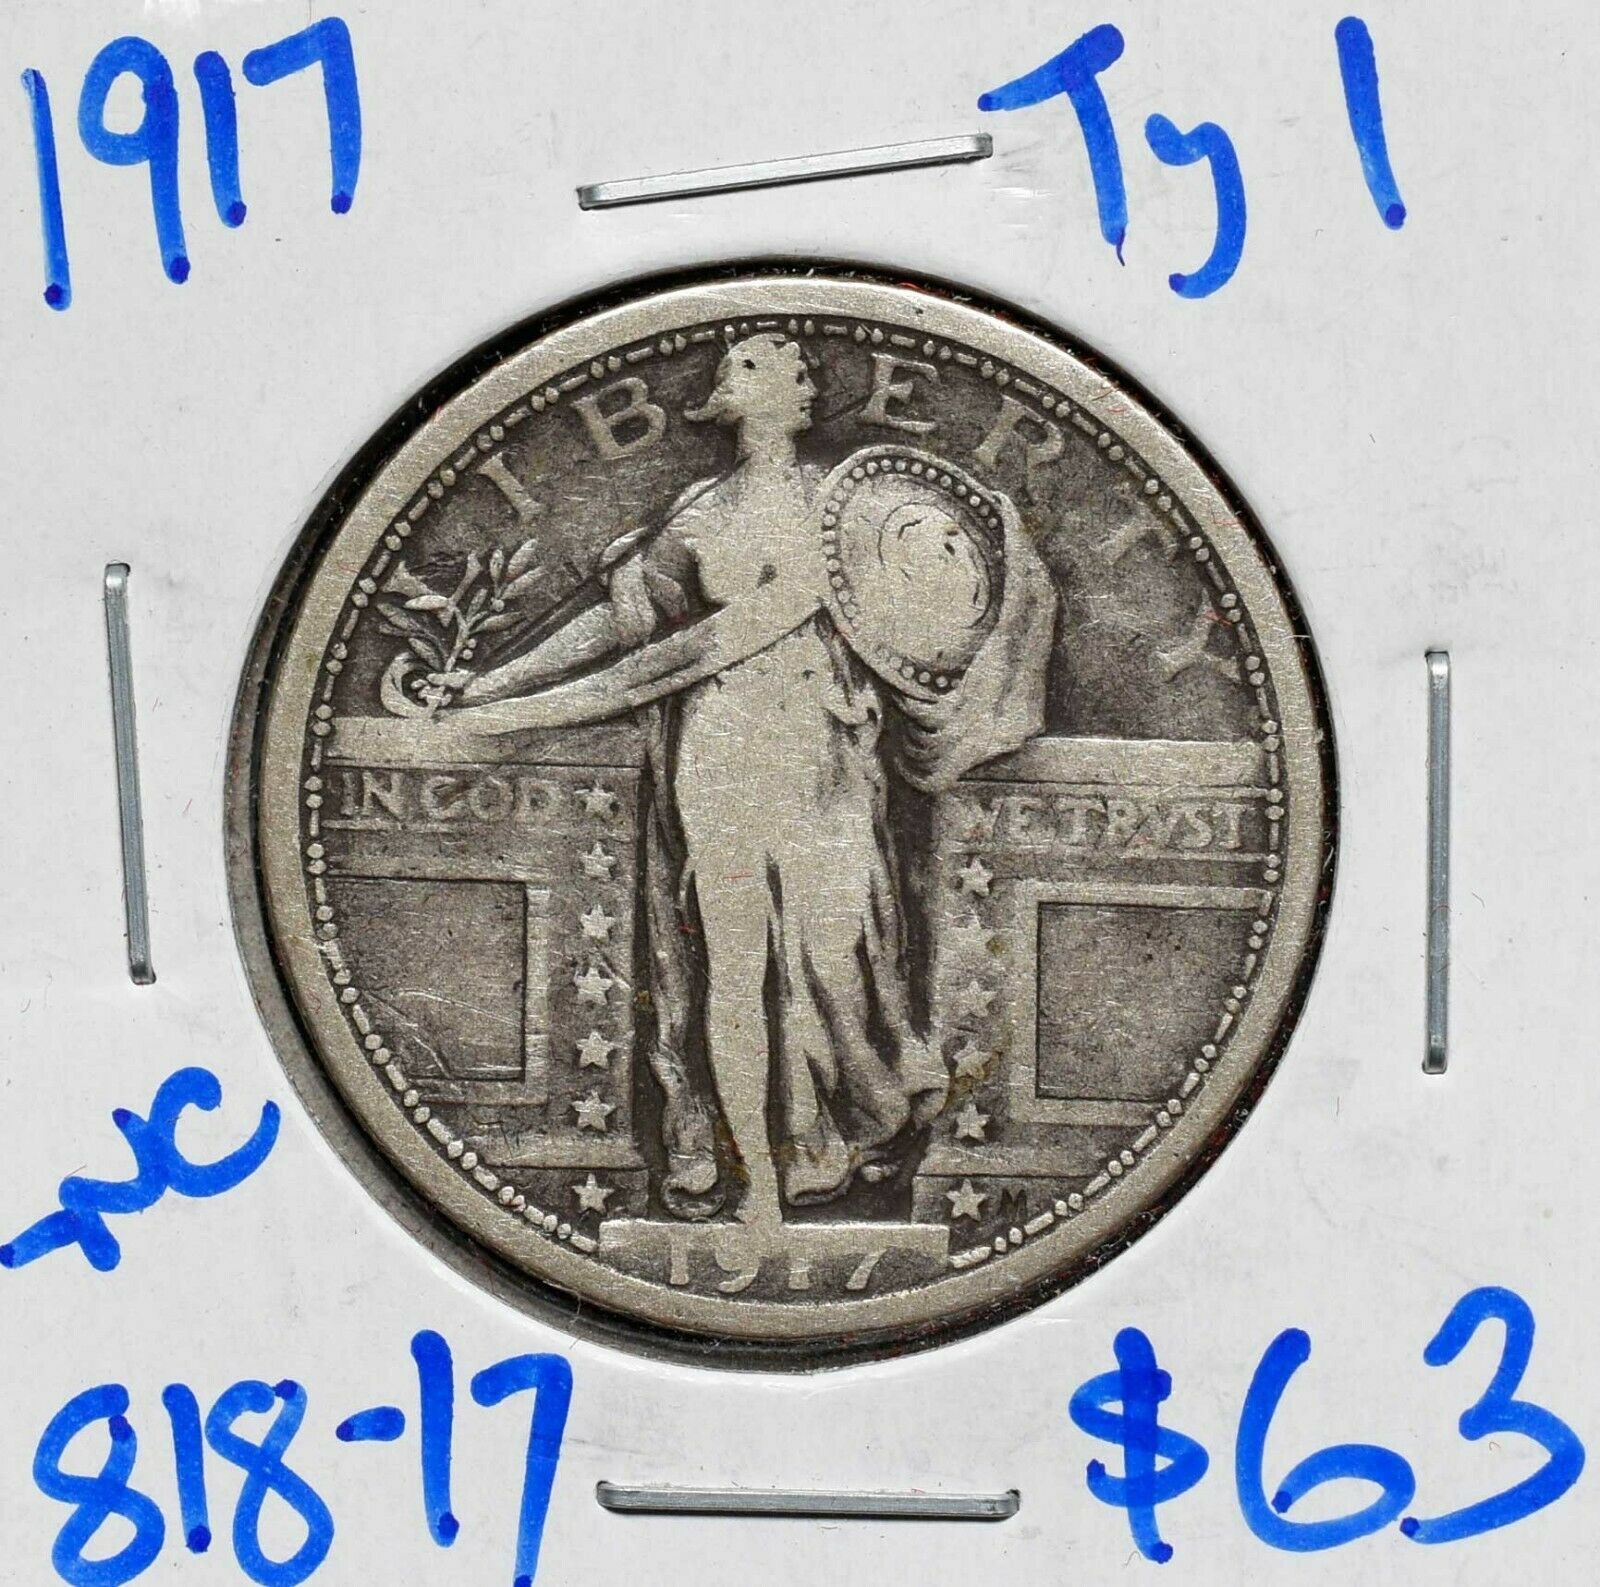 1917 Type I Standing Liberty Silver Quarter Coin Lot# 818-17